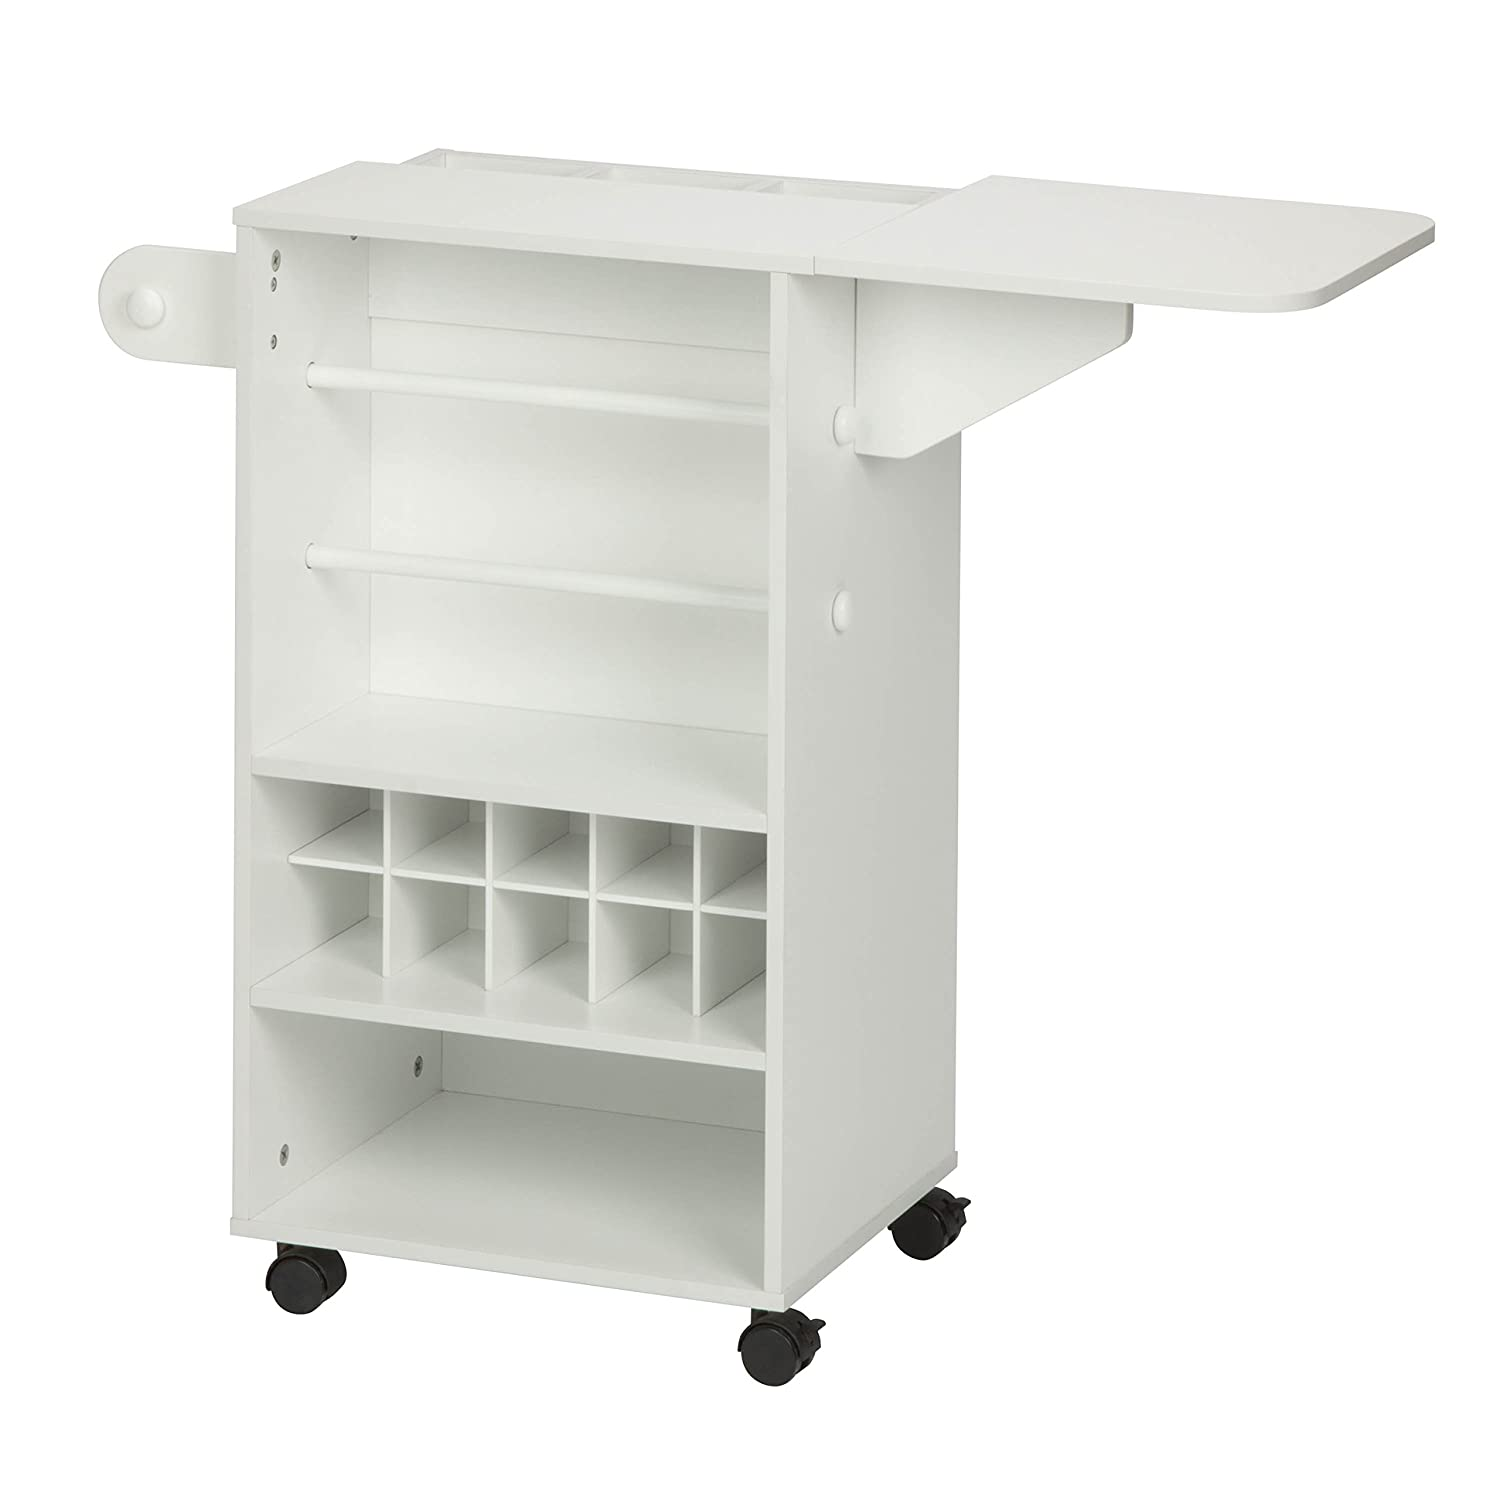 drawer white large trolley efficient four storage cart mobile itm drawers